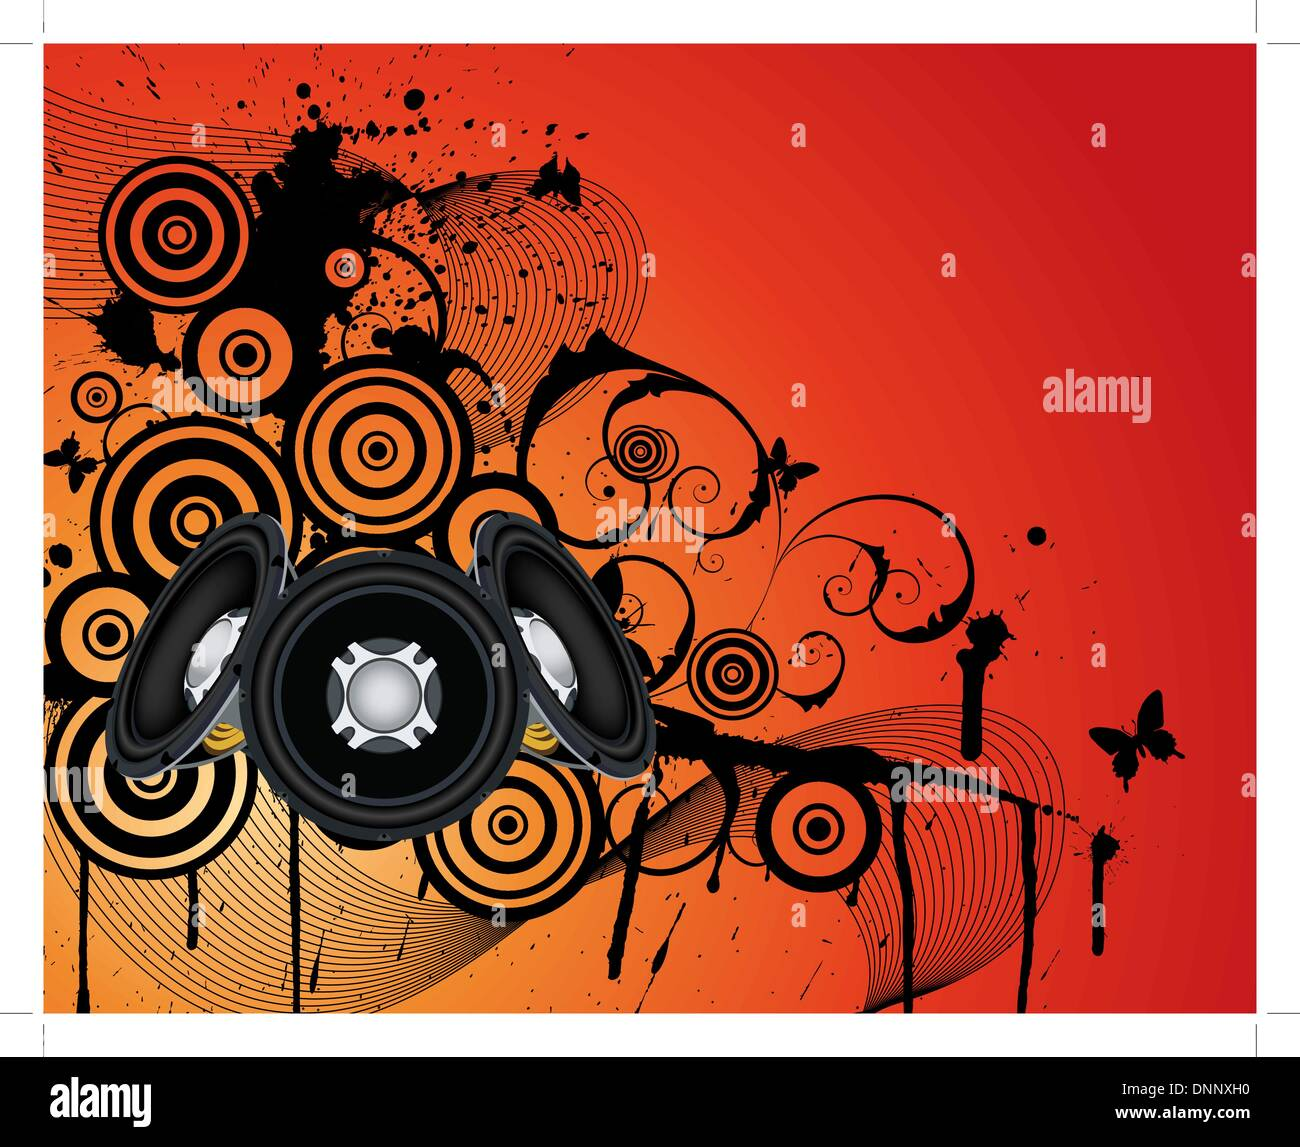 Musical grunge background. EPS 10 vectorillustration wthout transparency. - Stock Image